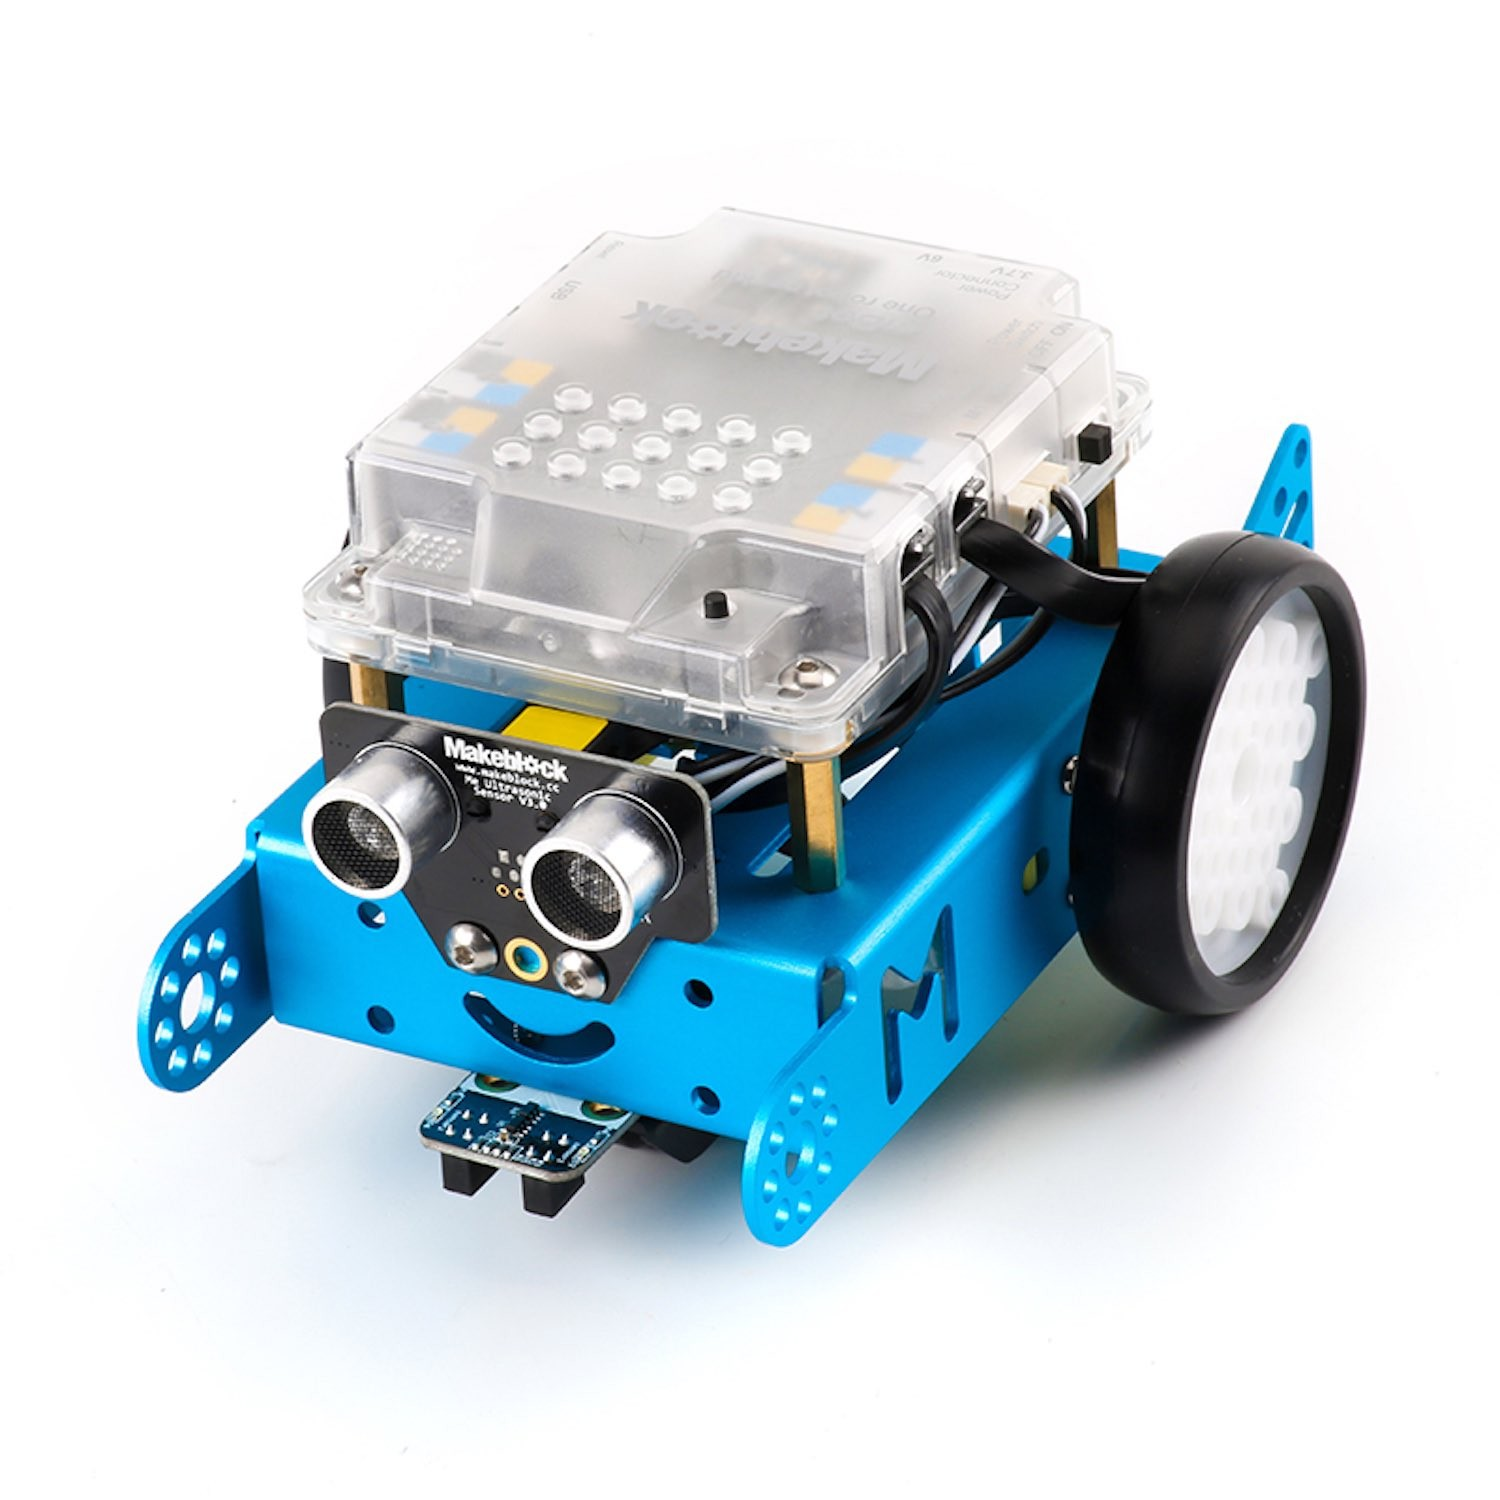 Makeblock MBot V1.1- 2.4G Wireless